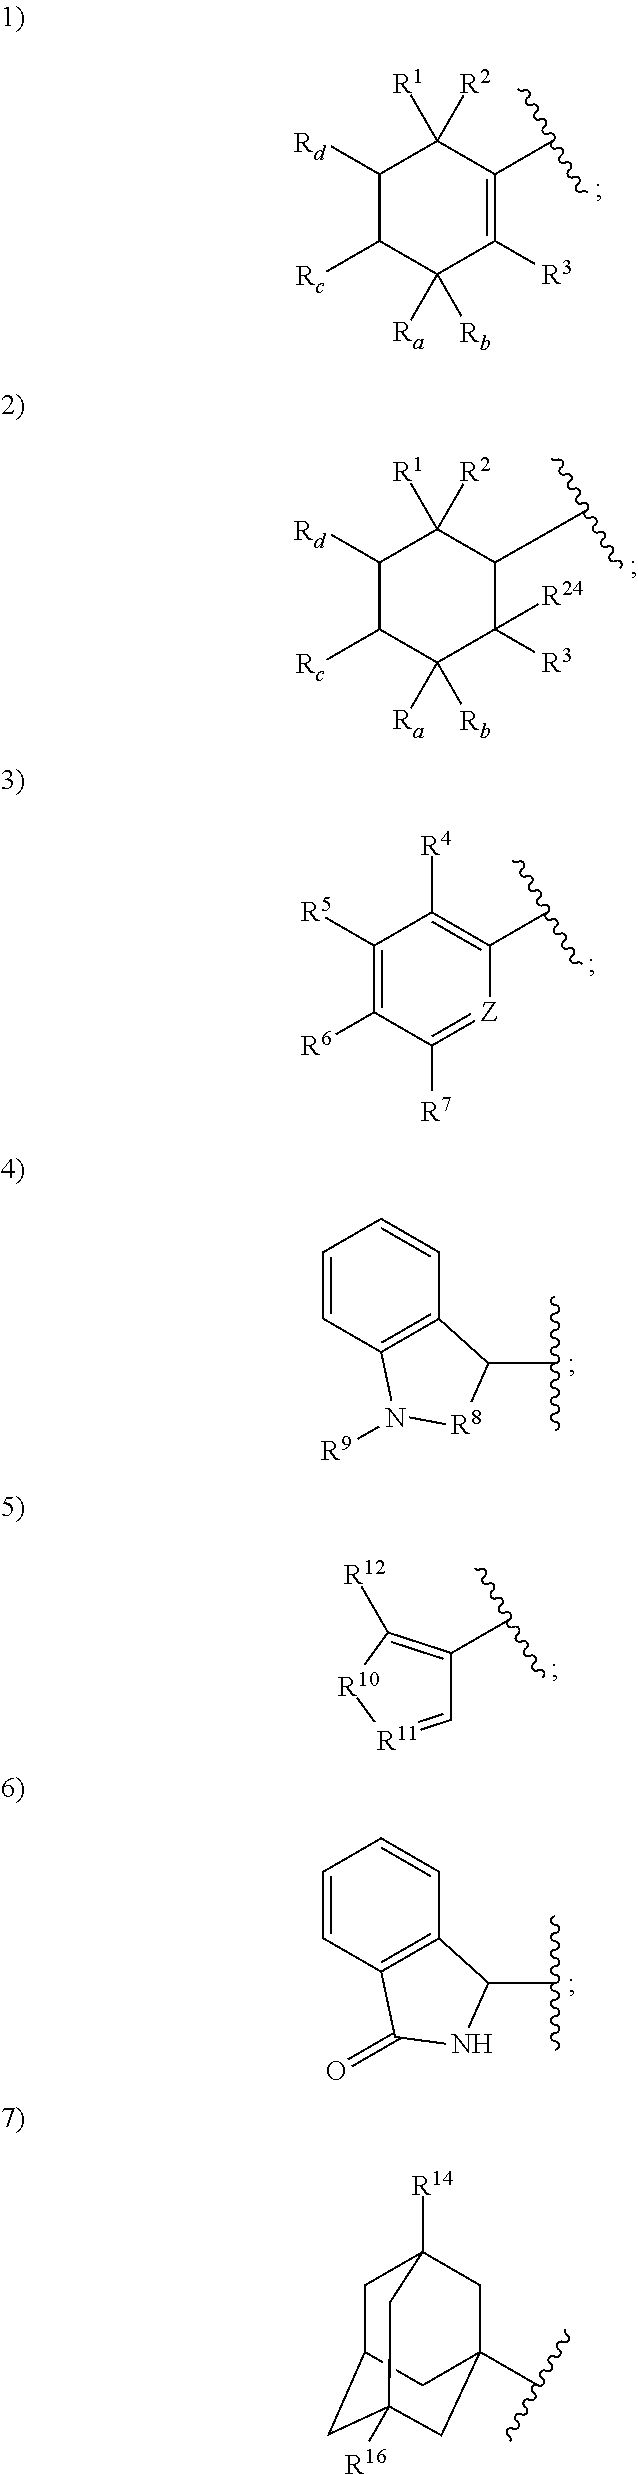 US9562022B2 - Opsin-binding ligands, compositions and